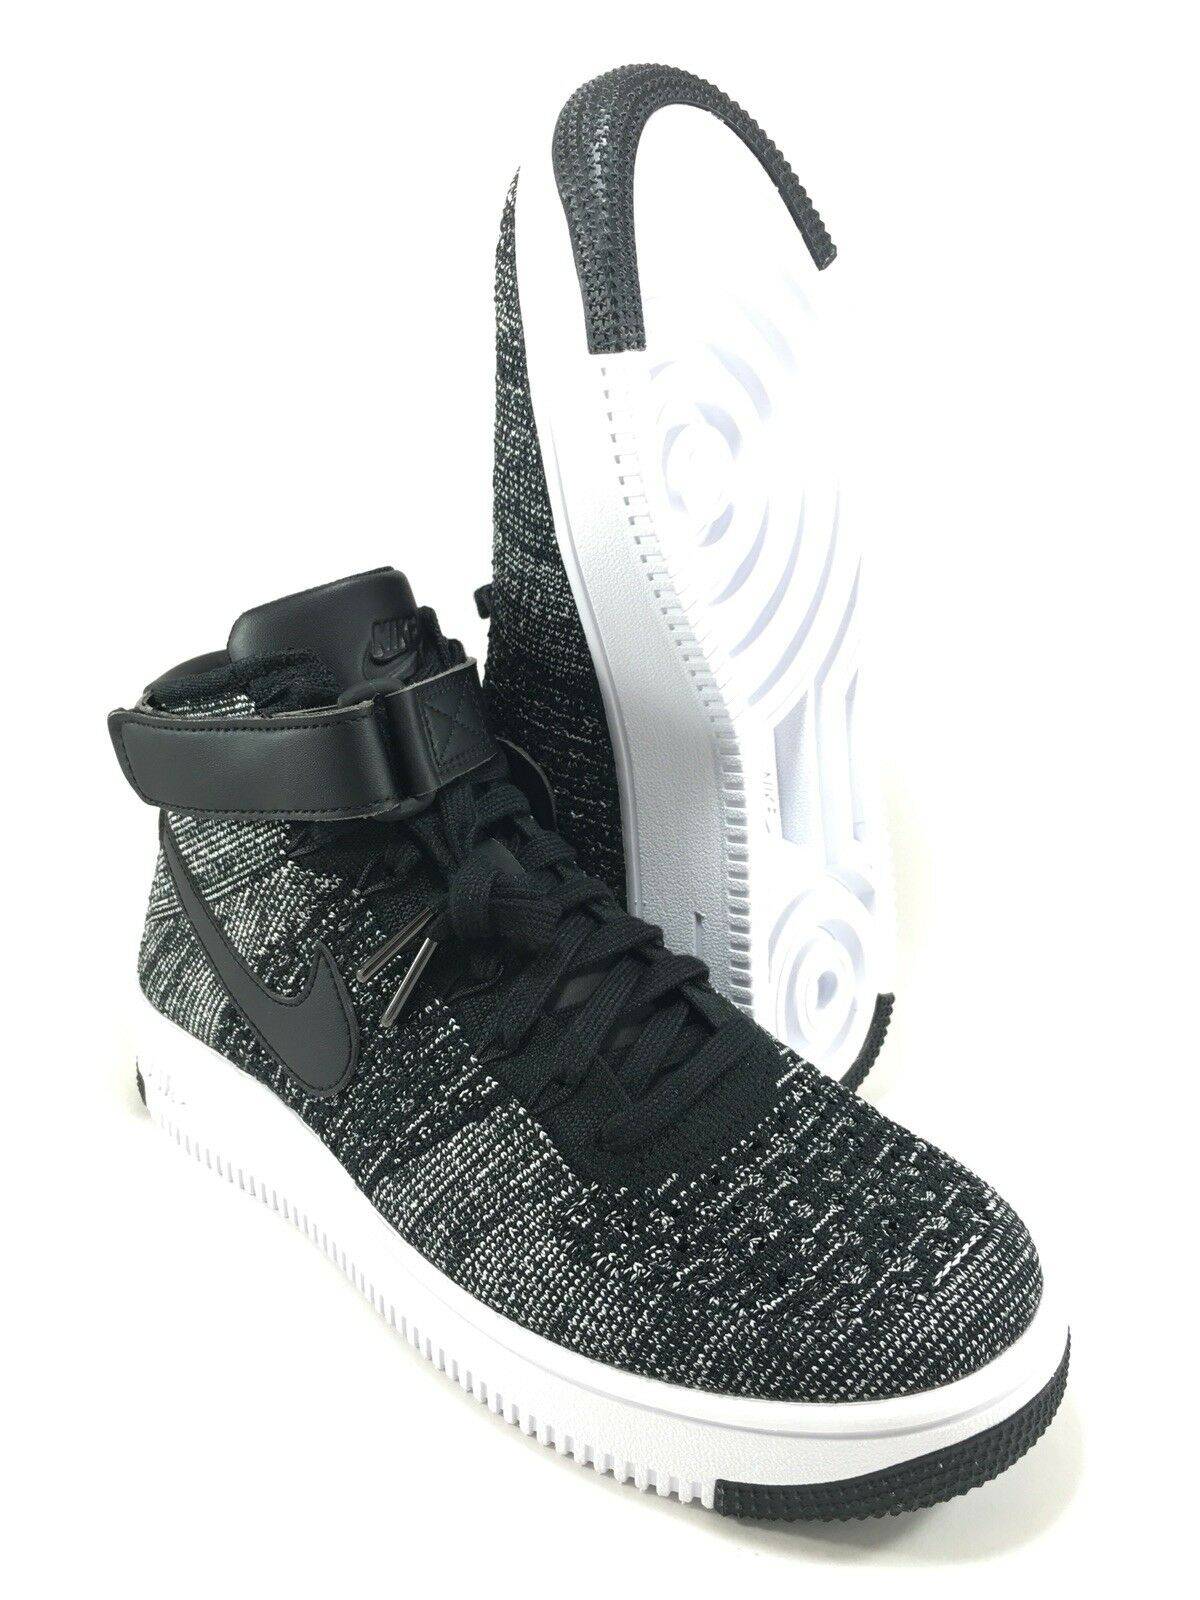 Nike Air Force 1 Ultra Flyknit Mens 9 OREO Black White shoes 817420-004 NEW